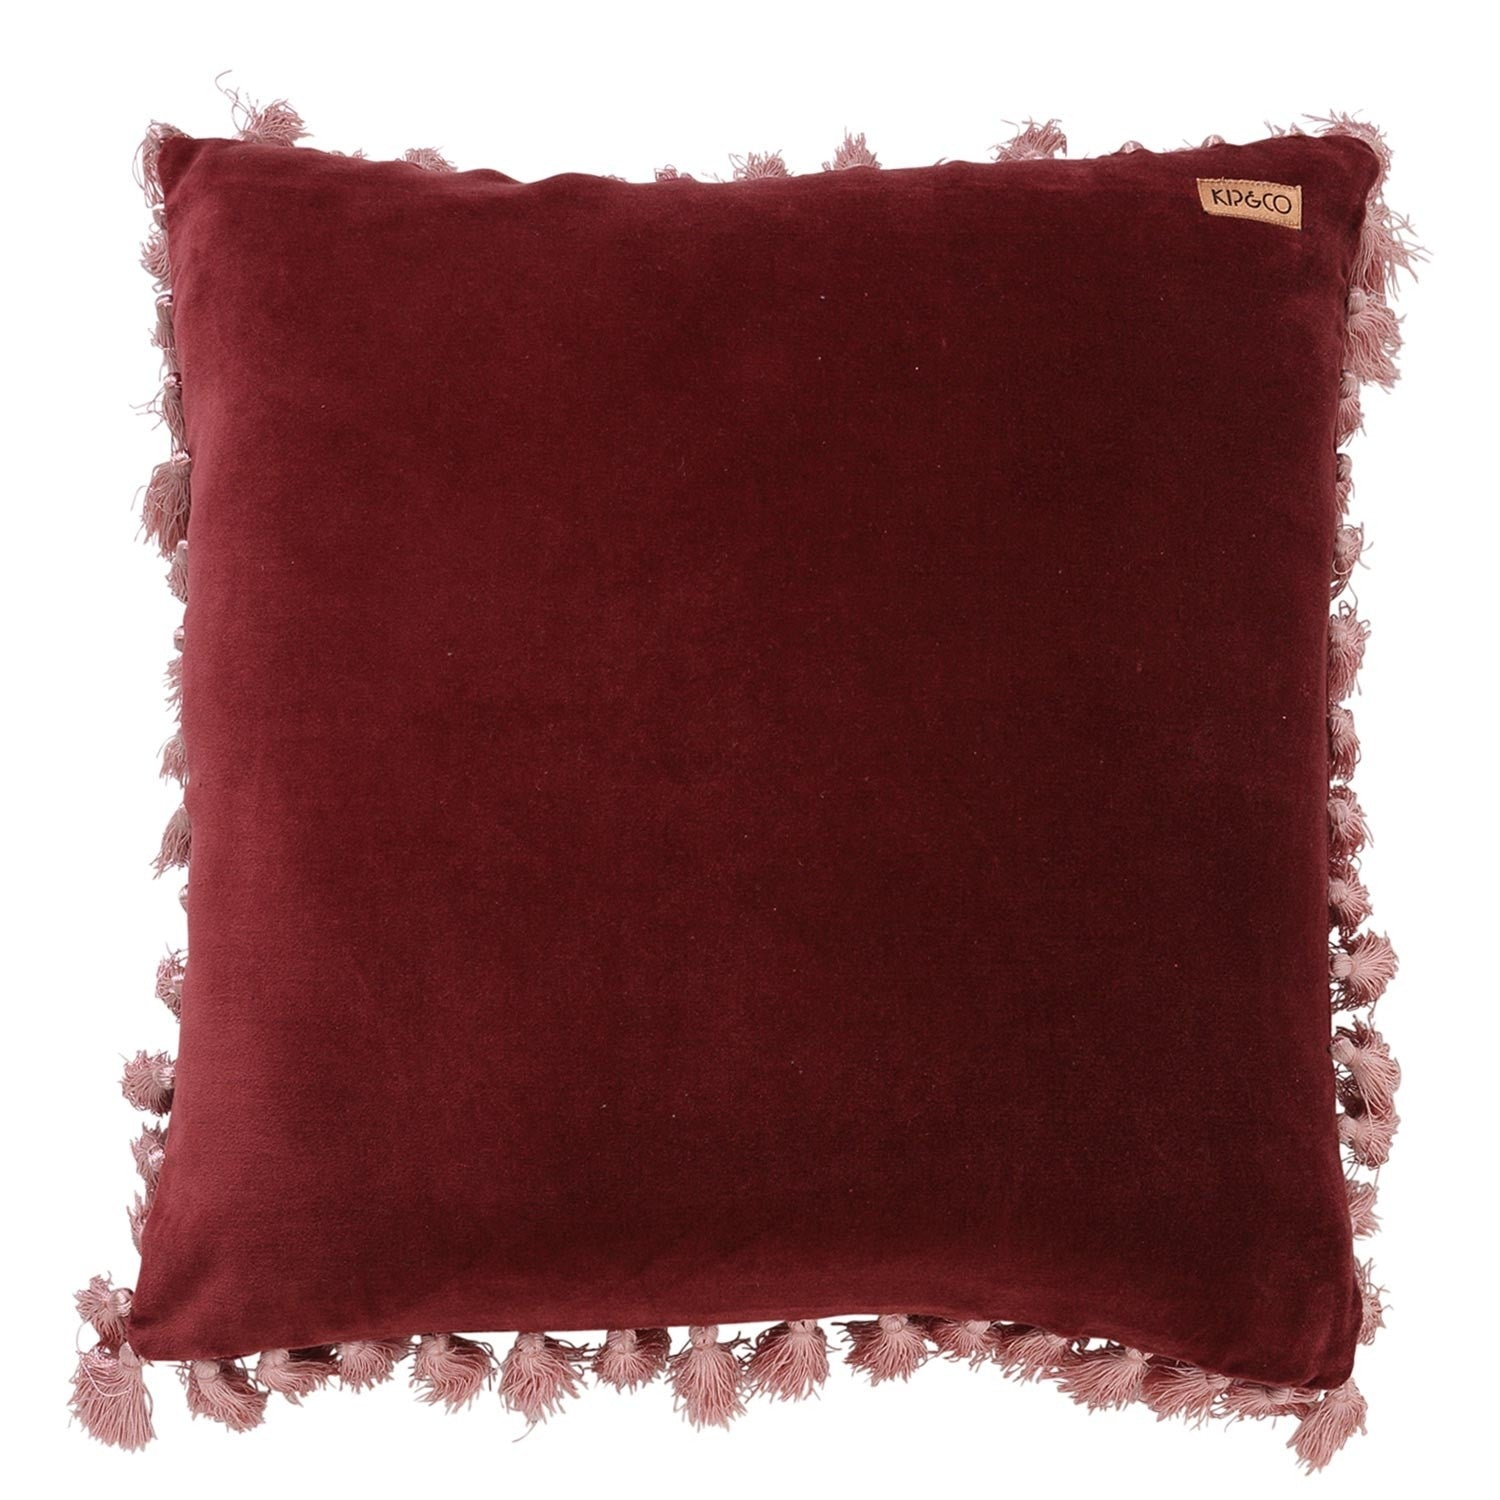 Kip & Co Velvet Tassel Cushion Cover Pomegranate - The Artisan Storeroom